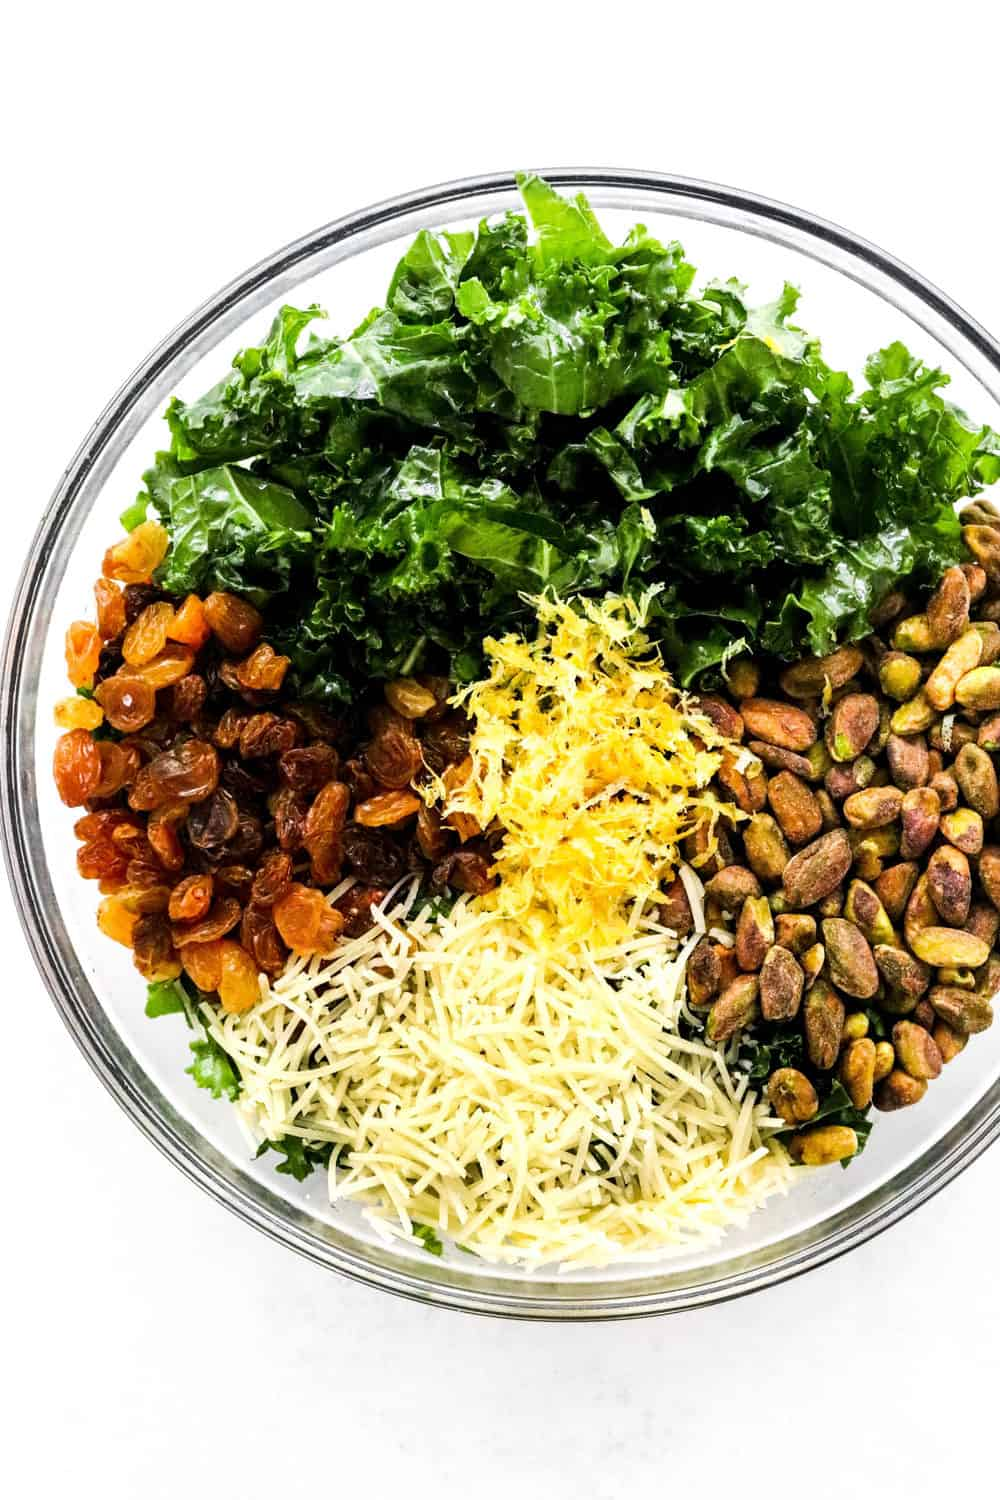 Chopped kale, pistachios, gold raisins, lemon zest and shredded parmesan cheese separated in a large round glass bowl on a white surface